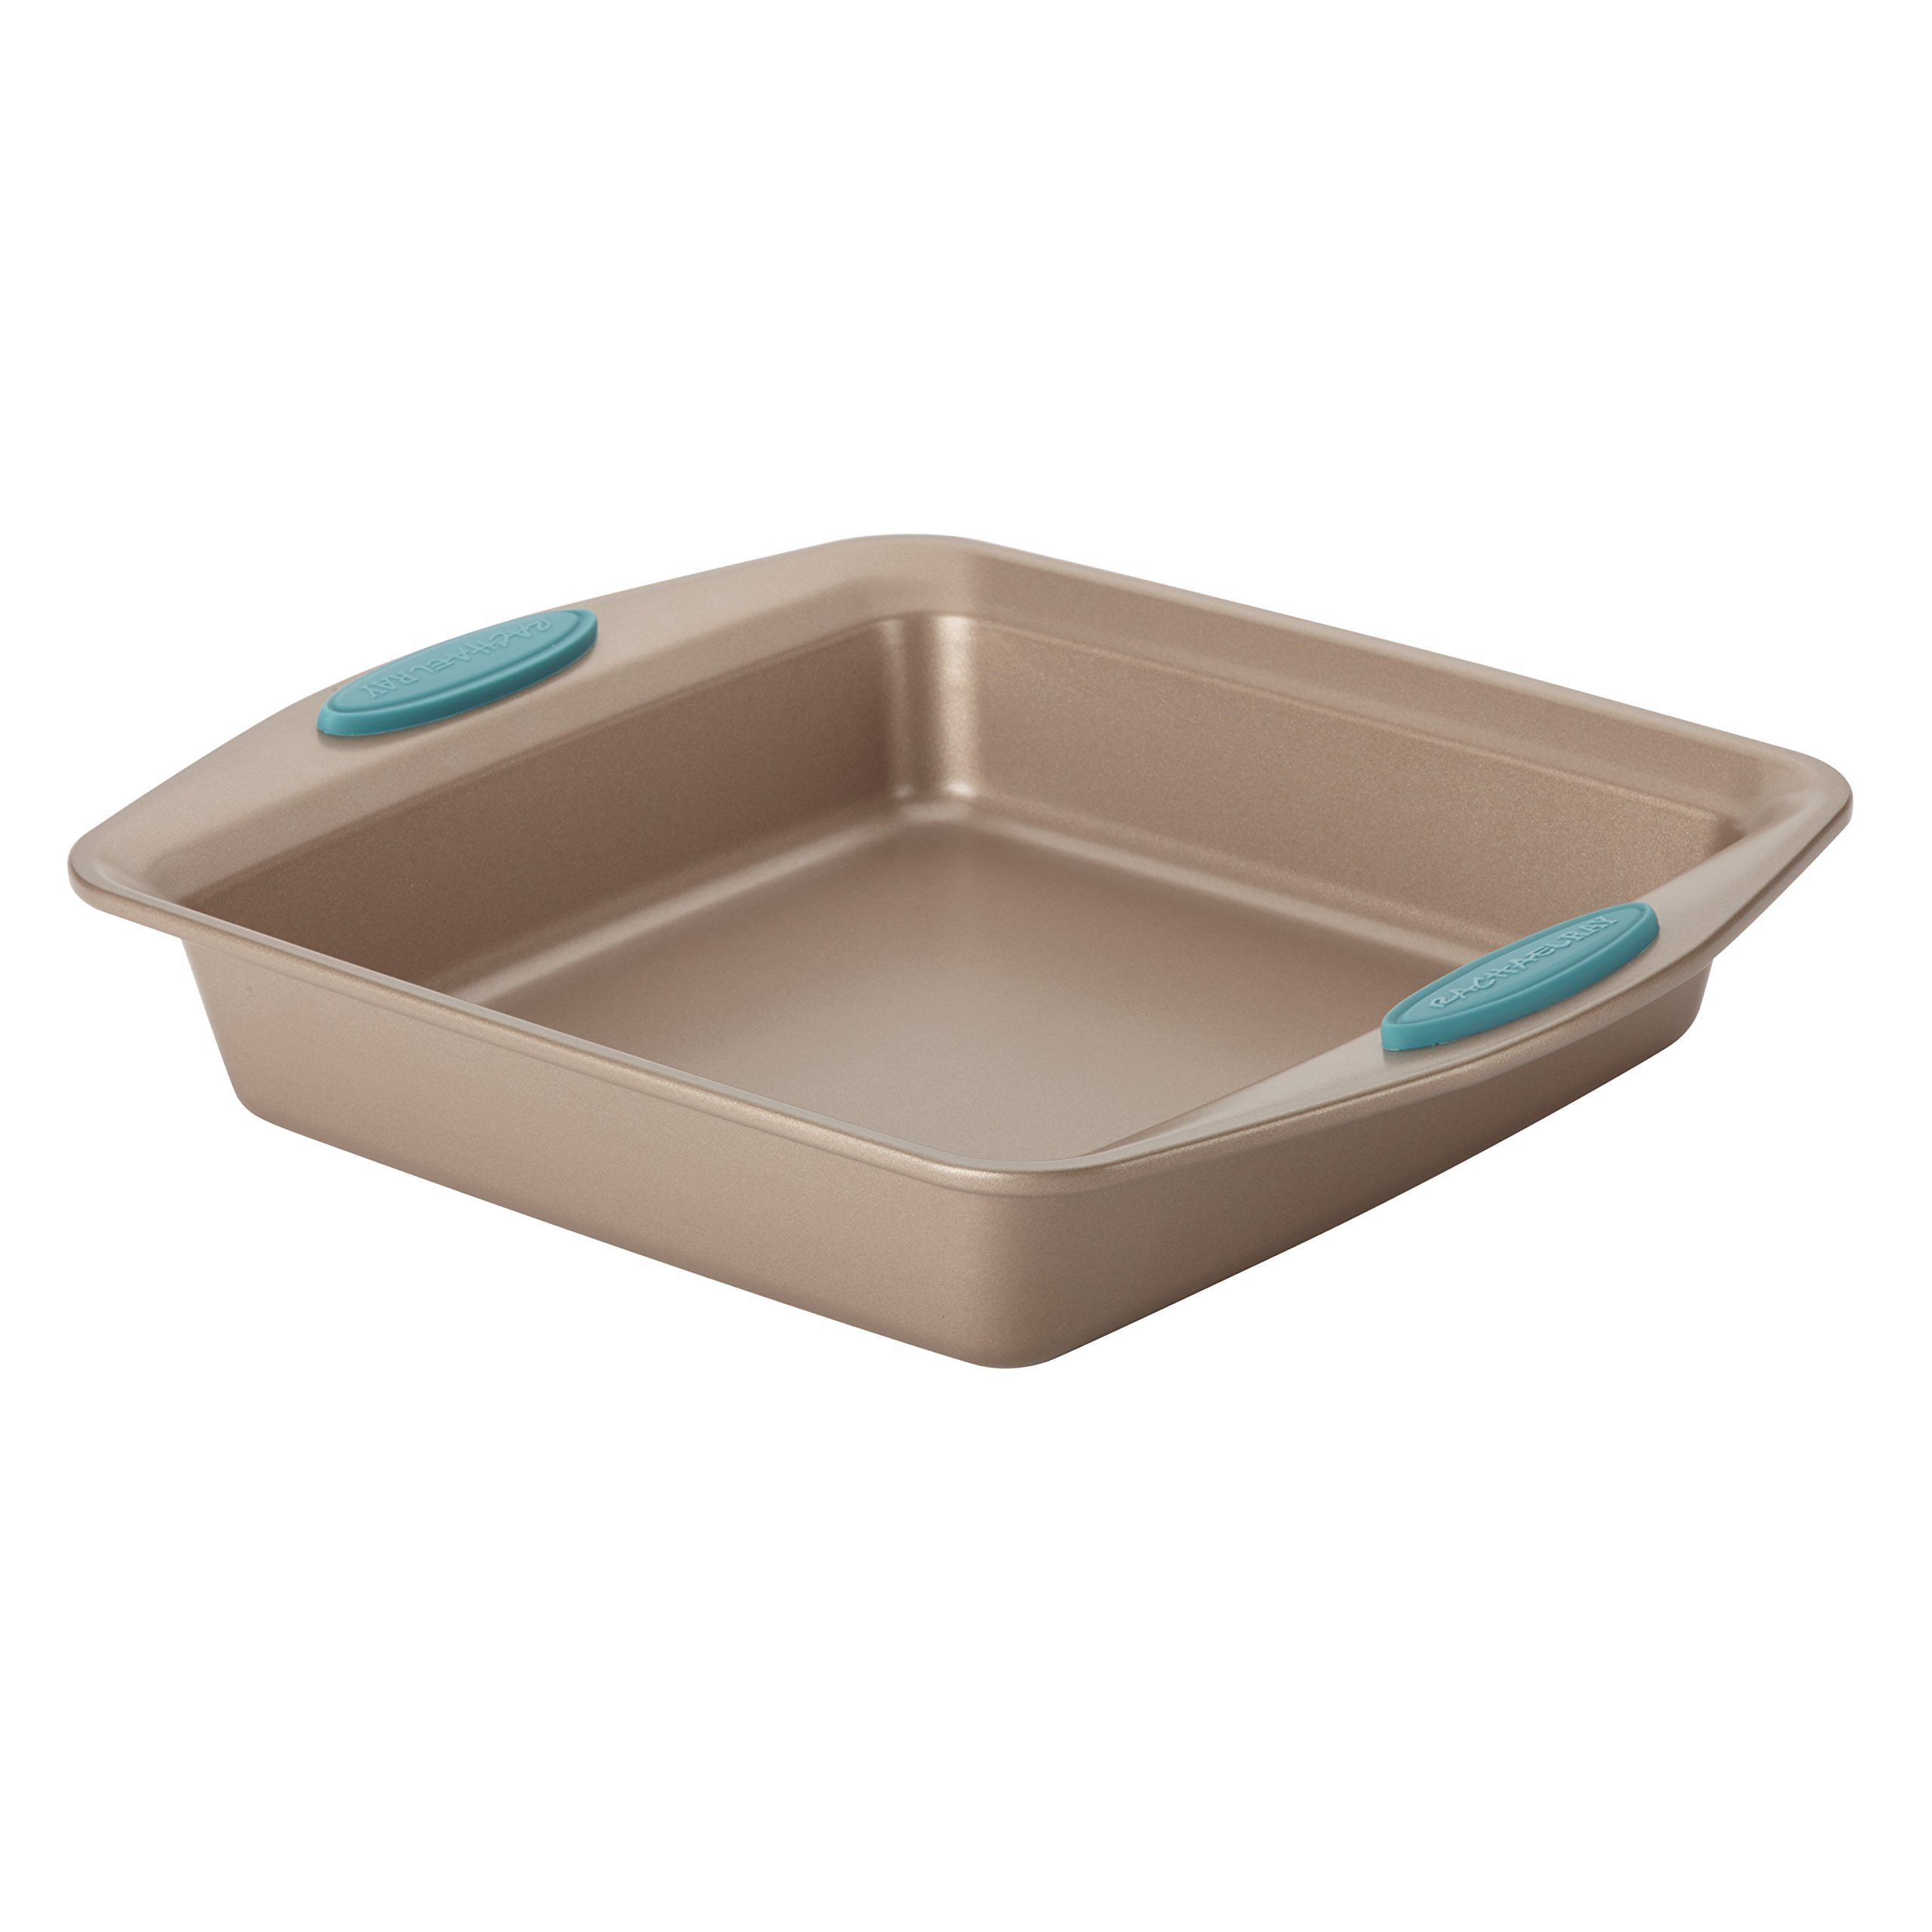 Rachael Ray Cucina Nonstick Bakeware Square Cake Pan, 9-Inch, Latte Brown with Agave Blue Handles - 46681 by Rachael Ray